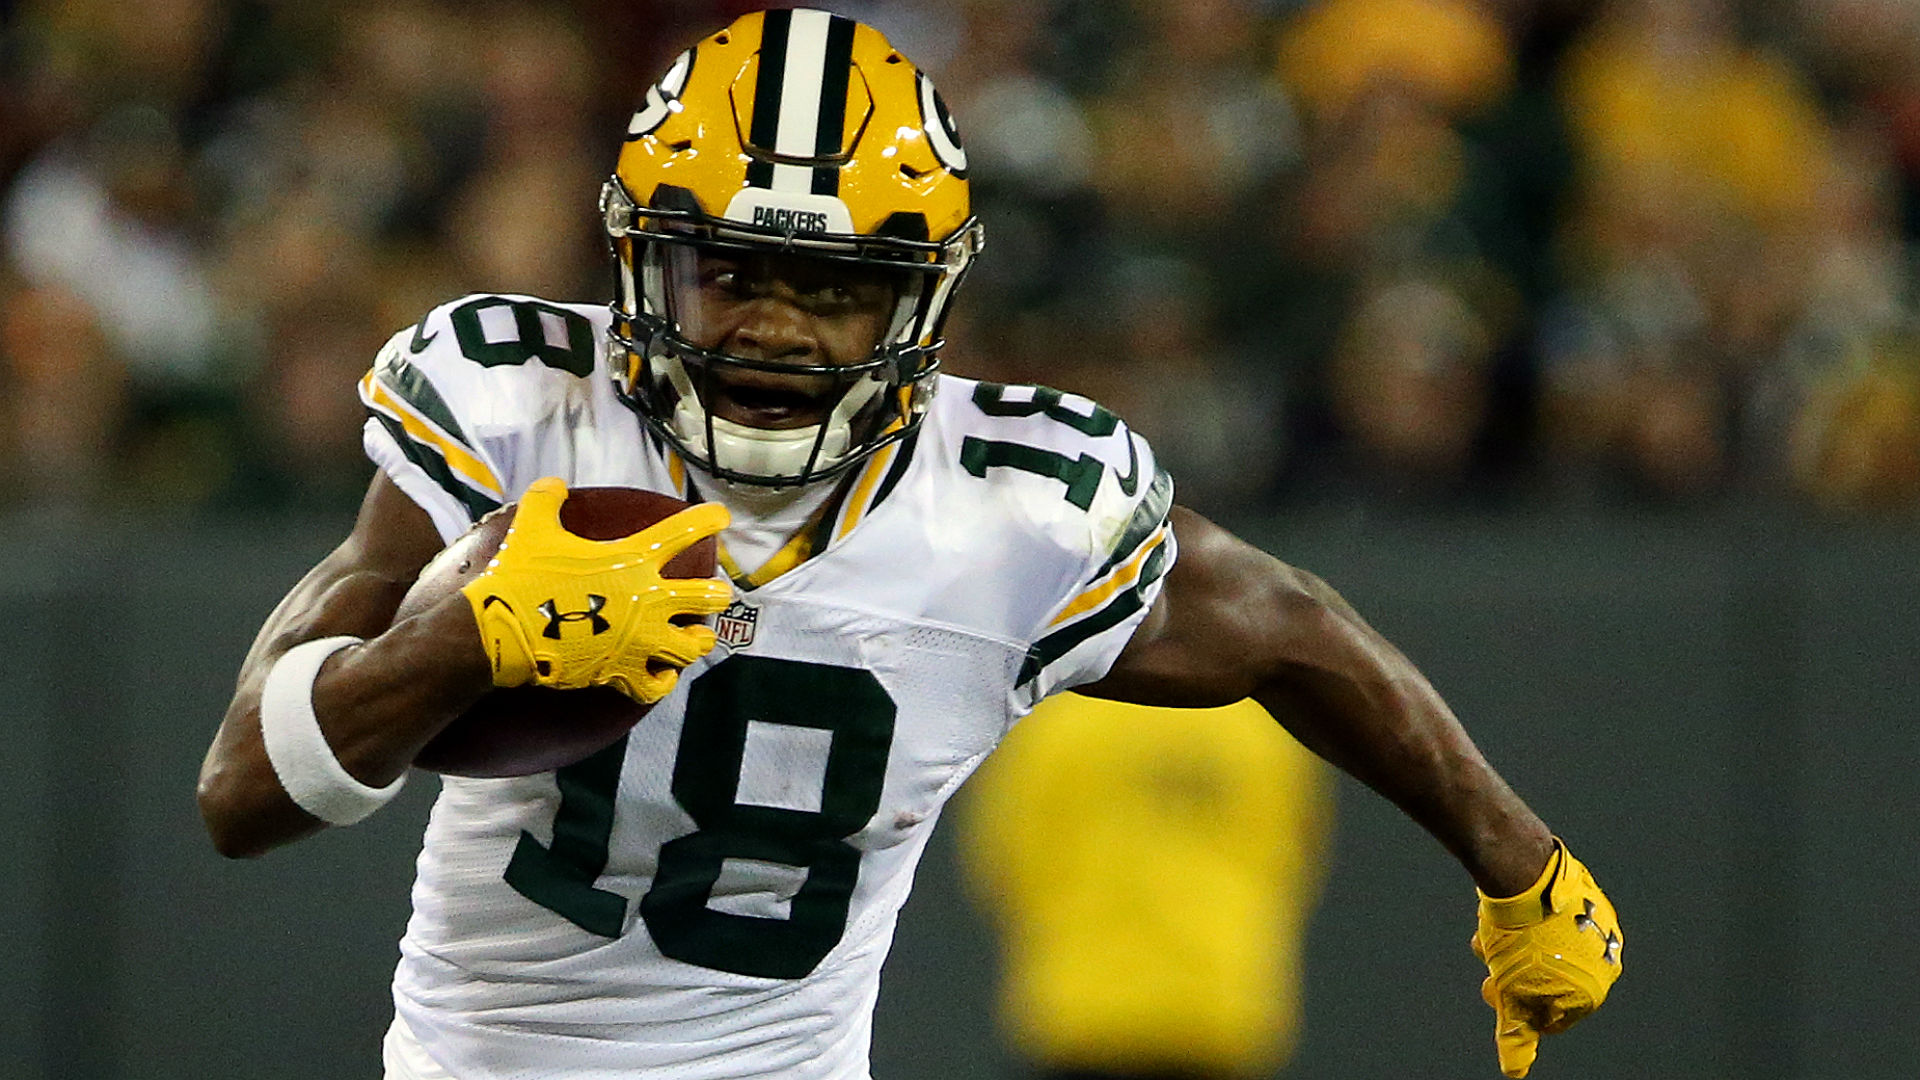 Cowboys bolster receiving corps with ex-Packer Randall Cobb